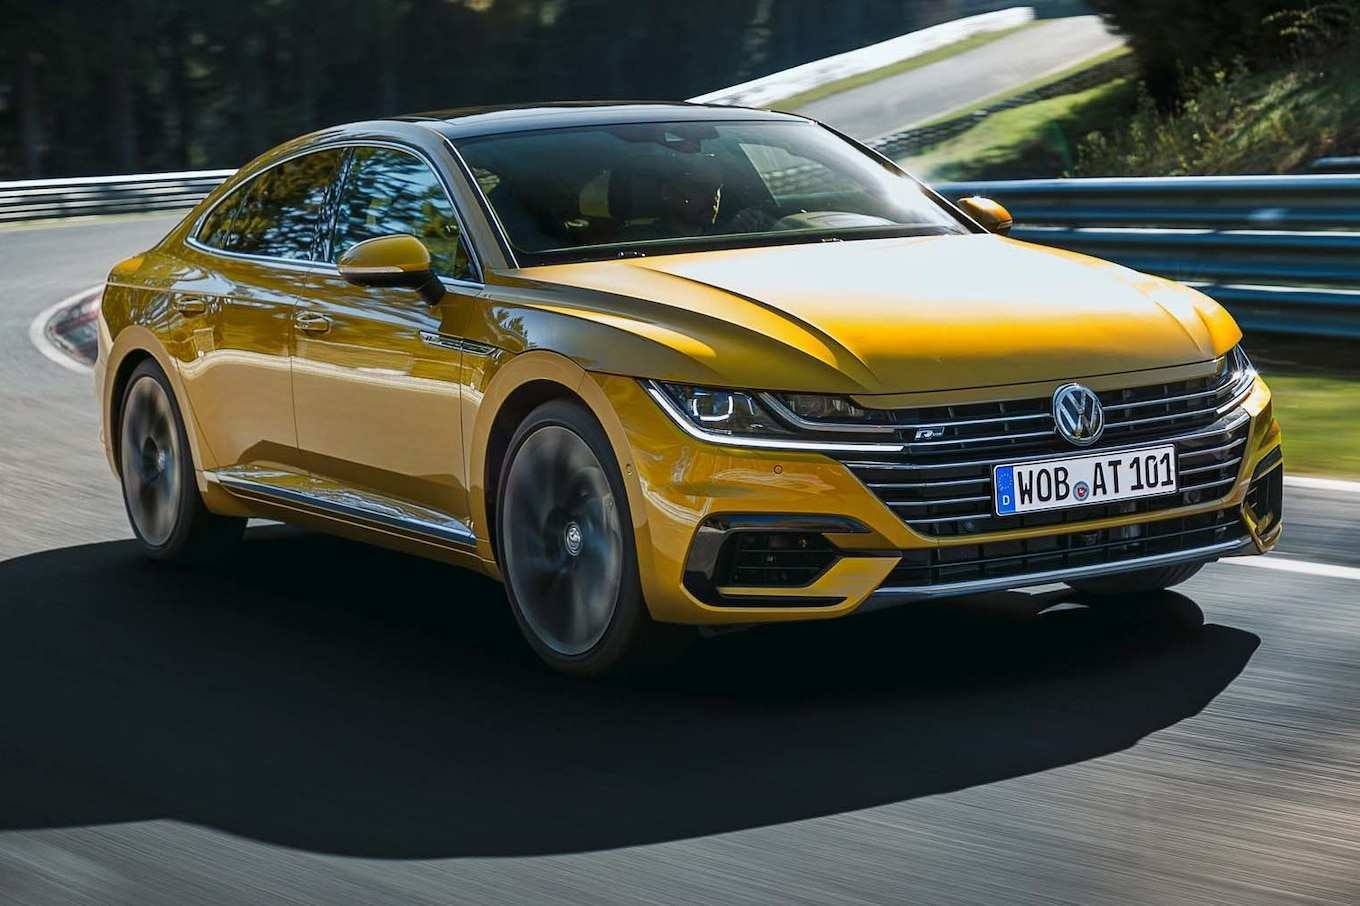 65 New Arteon Vw 2019 Interior by Arteon Vw 2019